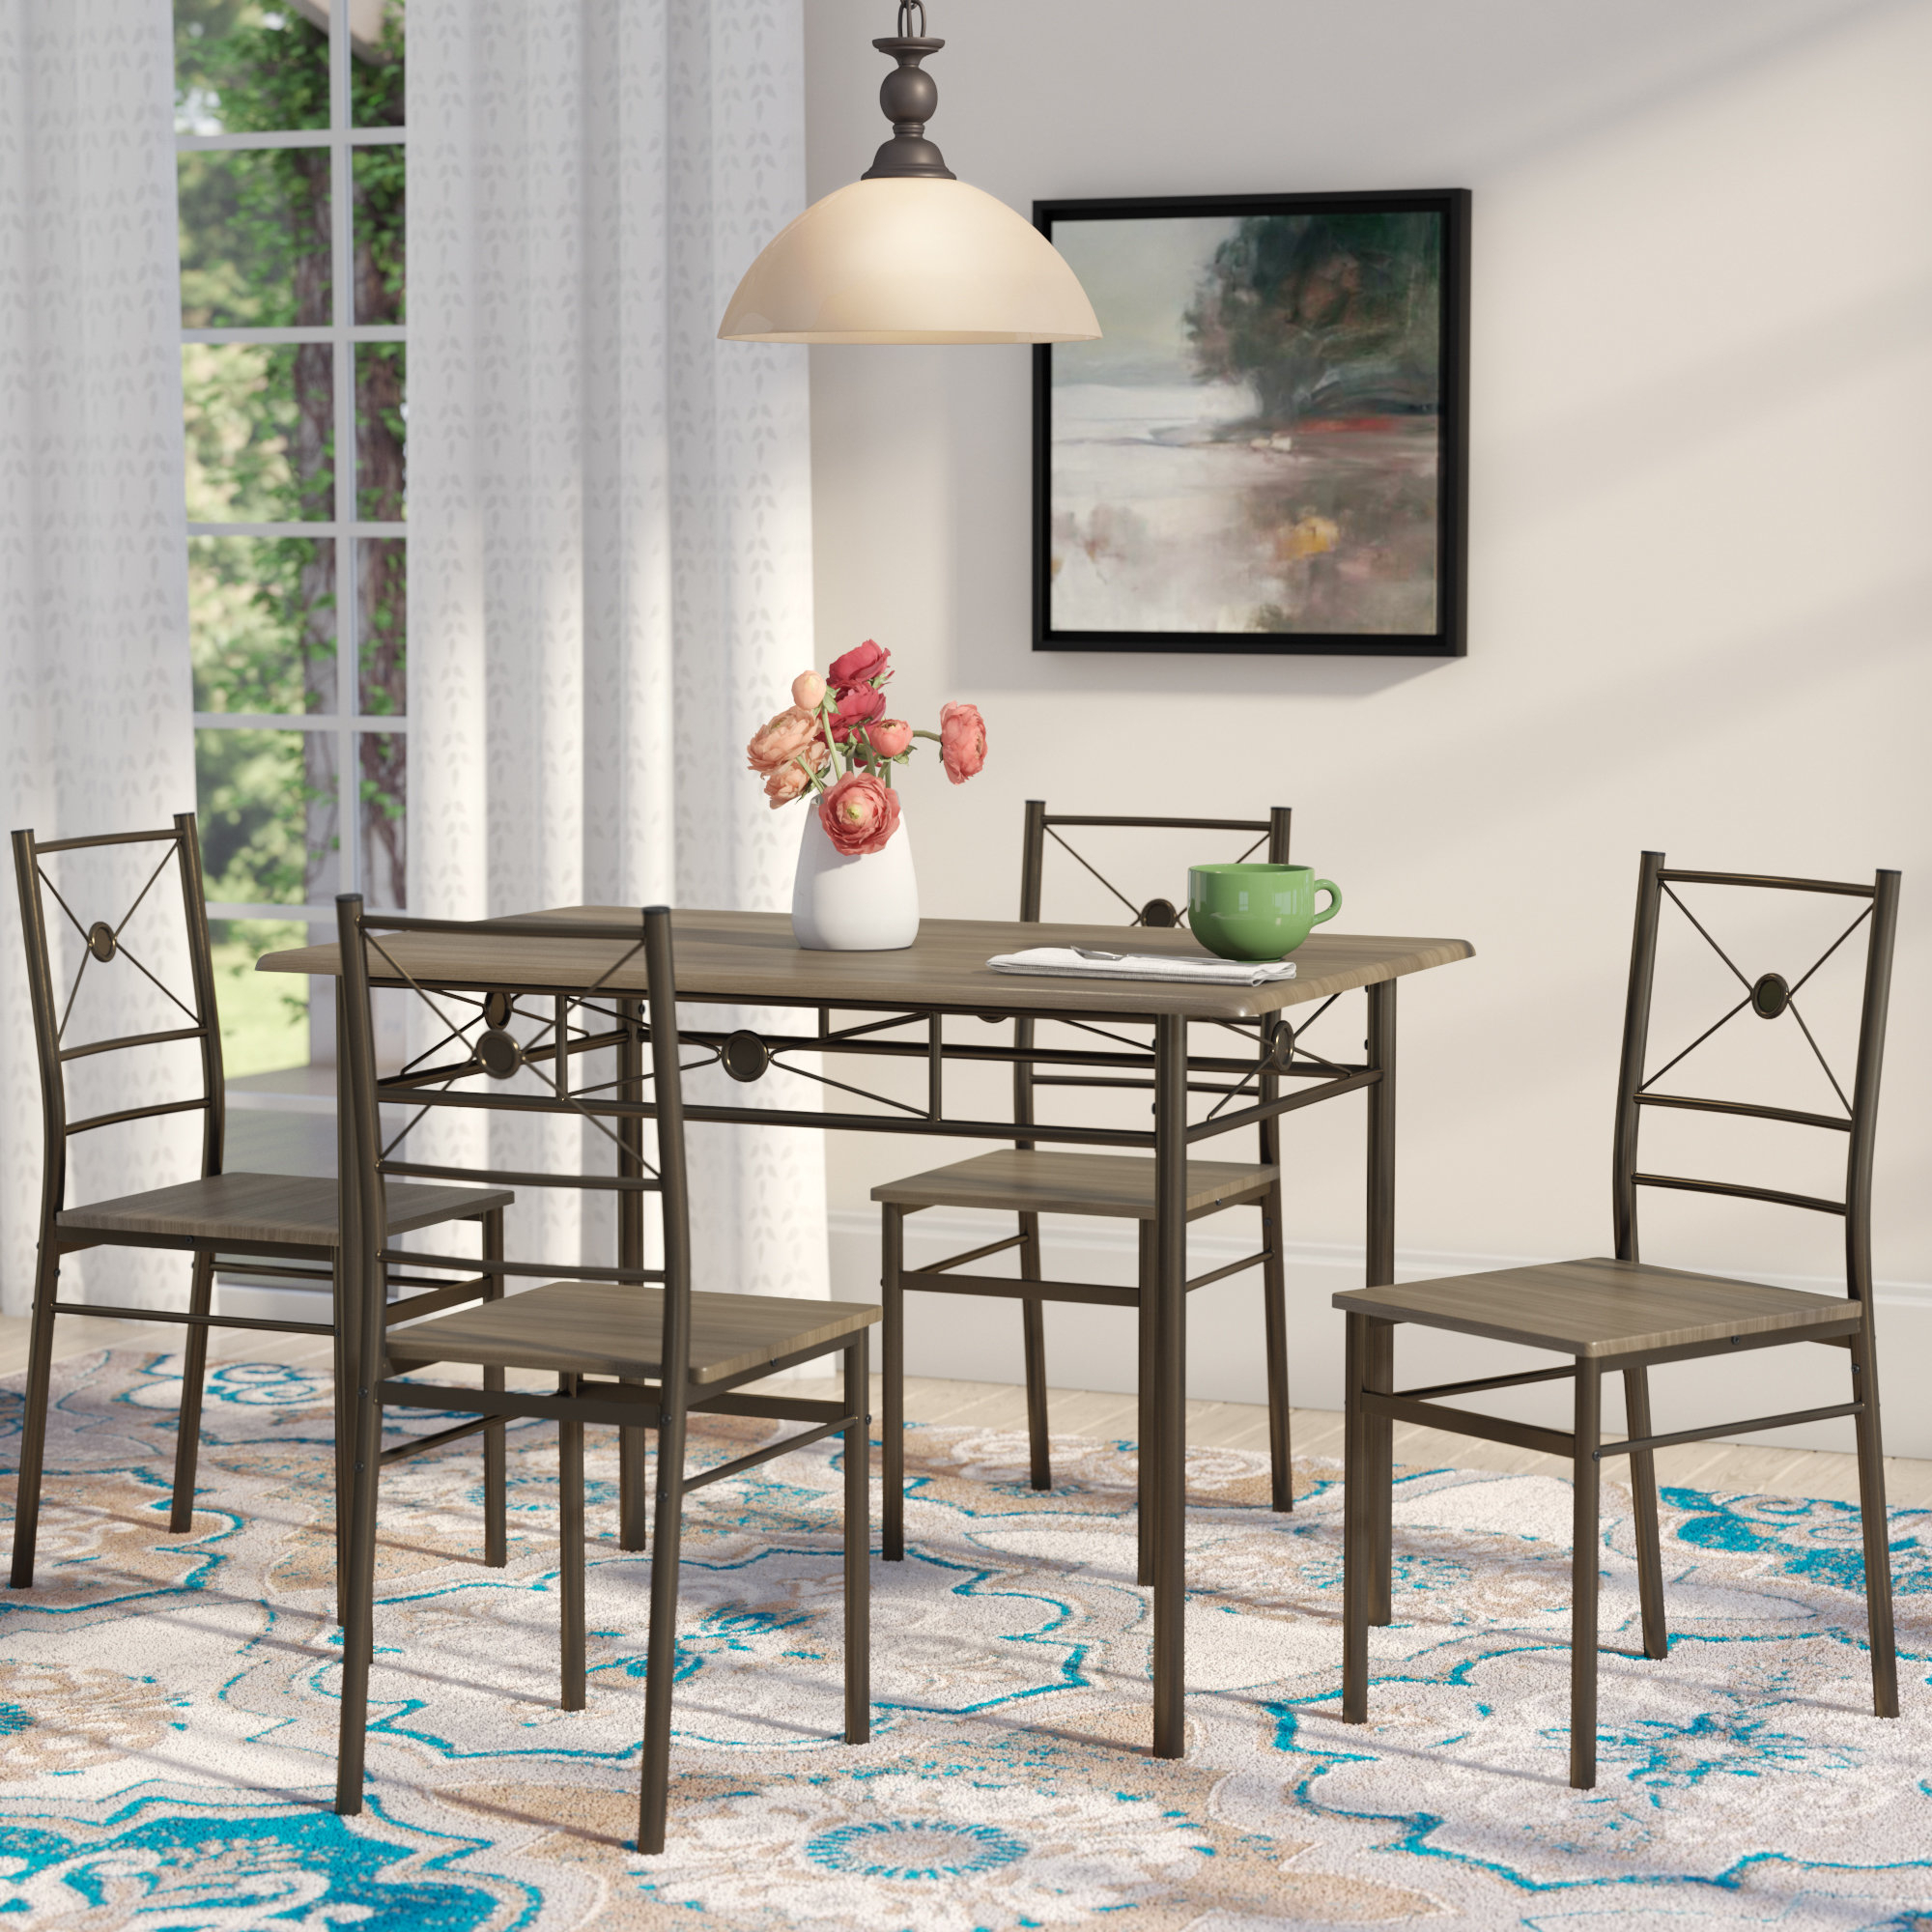 Kieffer 5 Piece Dining Set In Current Casiano 5 Piece Dining Sets (View 3 of 20)